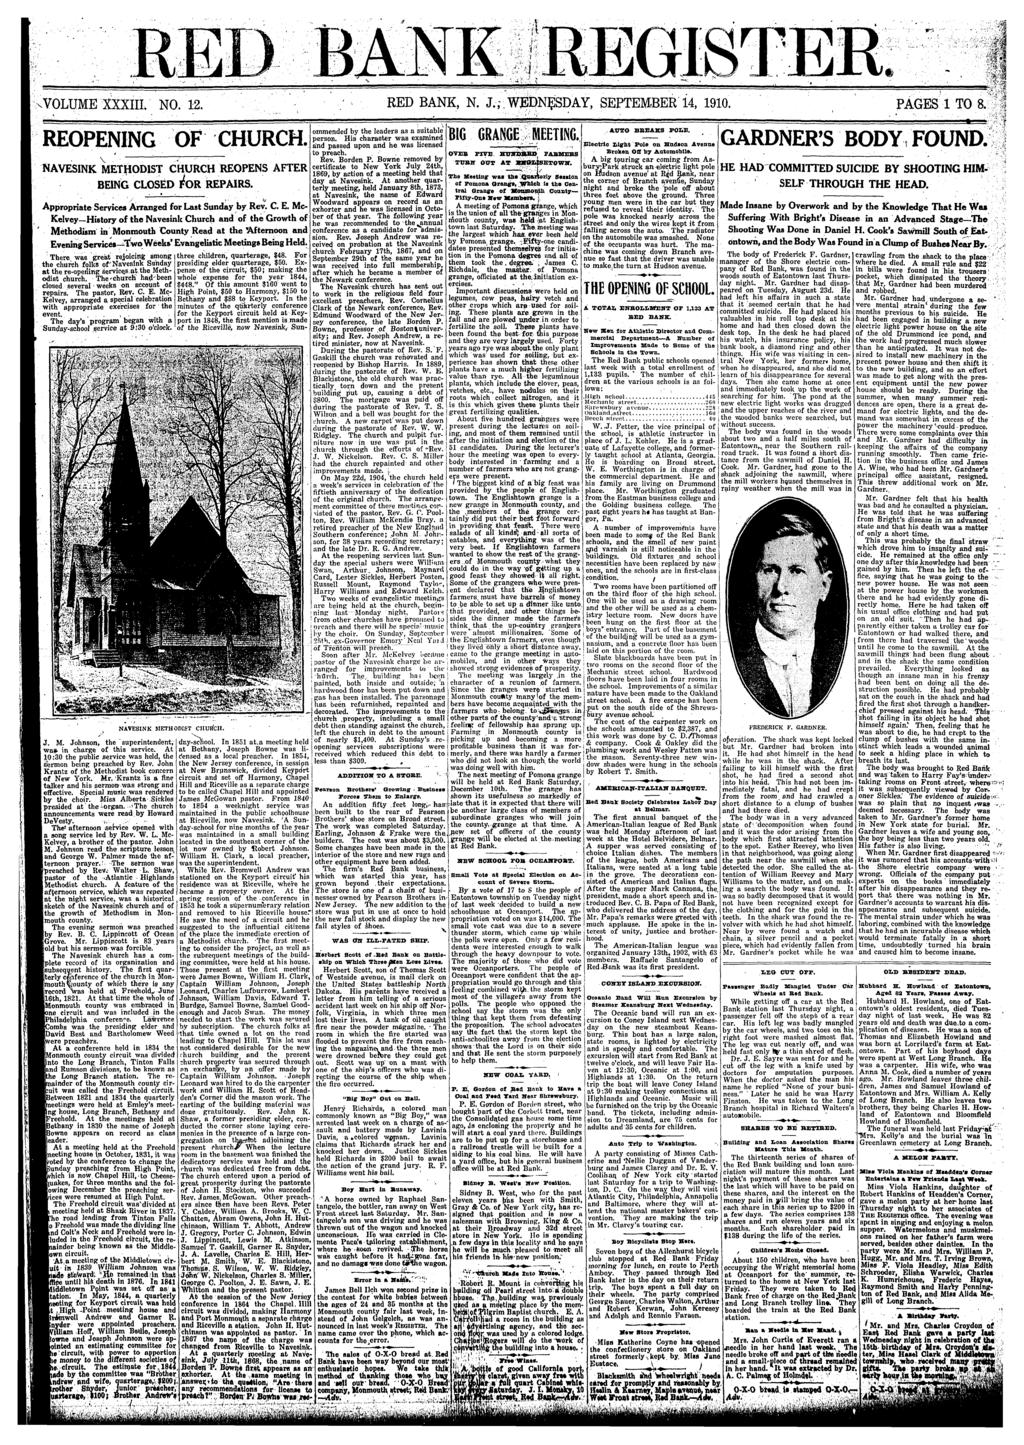 .VOLUME XXXIII. NO. 2. RED BANK, N. J.; WEDNESDAY, SEPTEMBER 4, 90. PAGES TO 8. REOPENING OF CHURCH. V NAVESINK METHODIST CHURCH REOPENS AFTER BEING CLOSED REPAIRS.